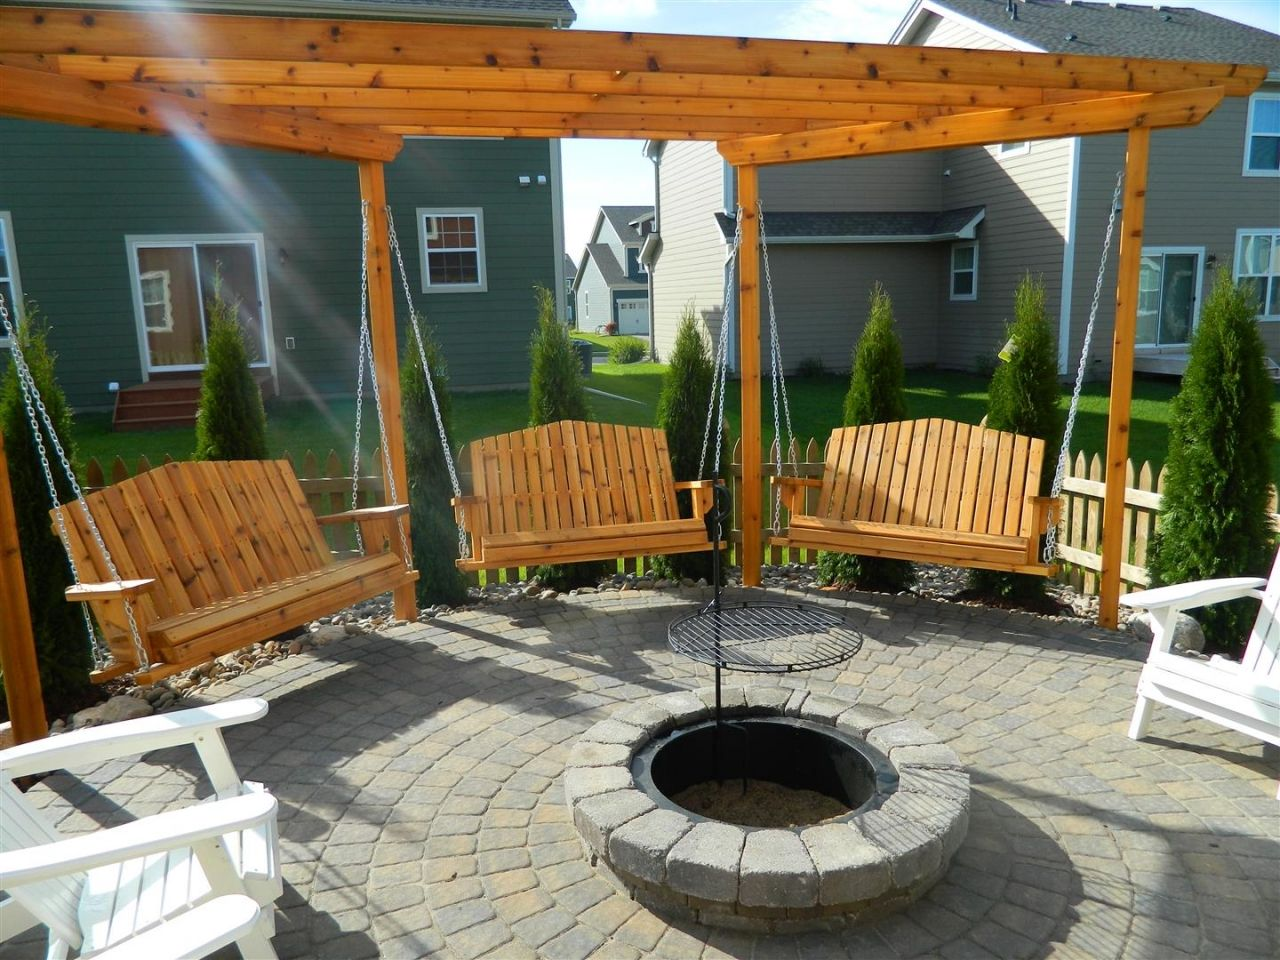 multi purpose fire pit seating area backyard ideas pinterest stone fire pit swings and. Black Bedroom Furniture Sets. Home Design Ideas